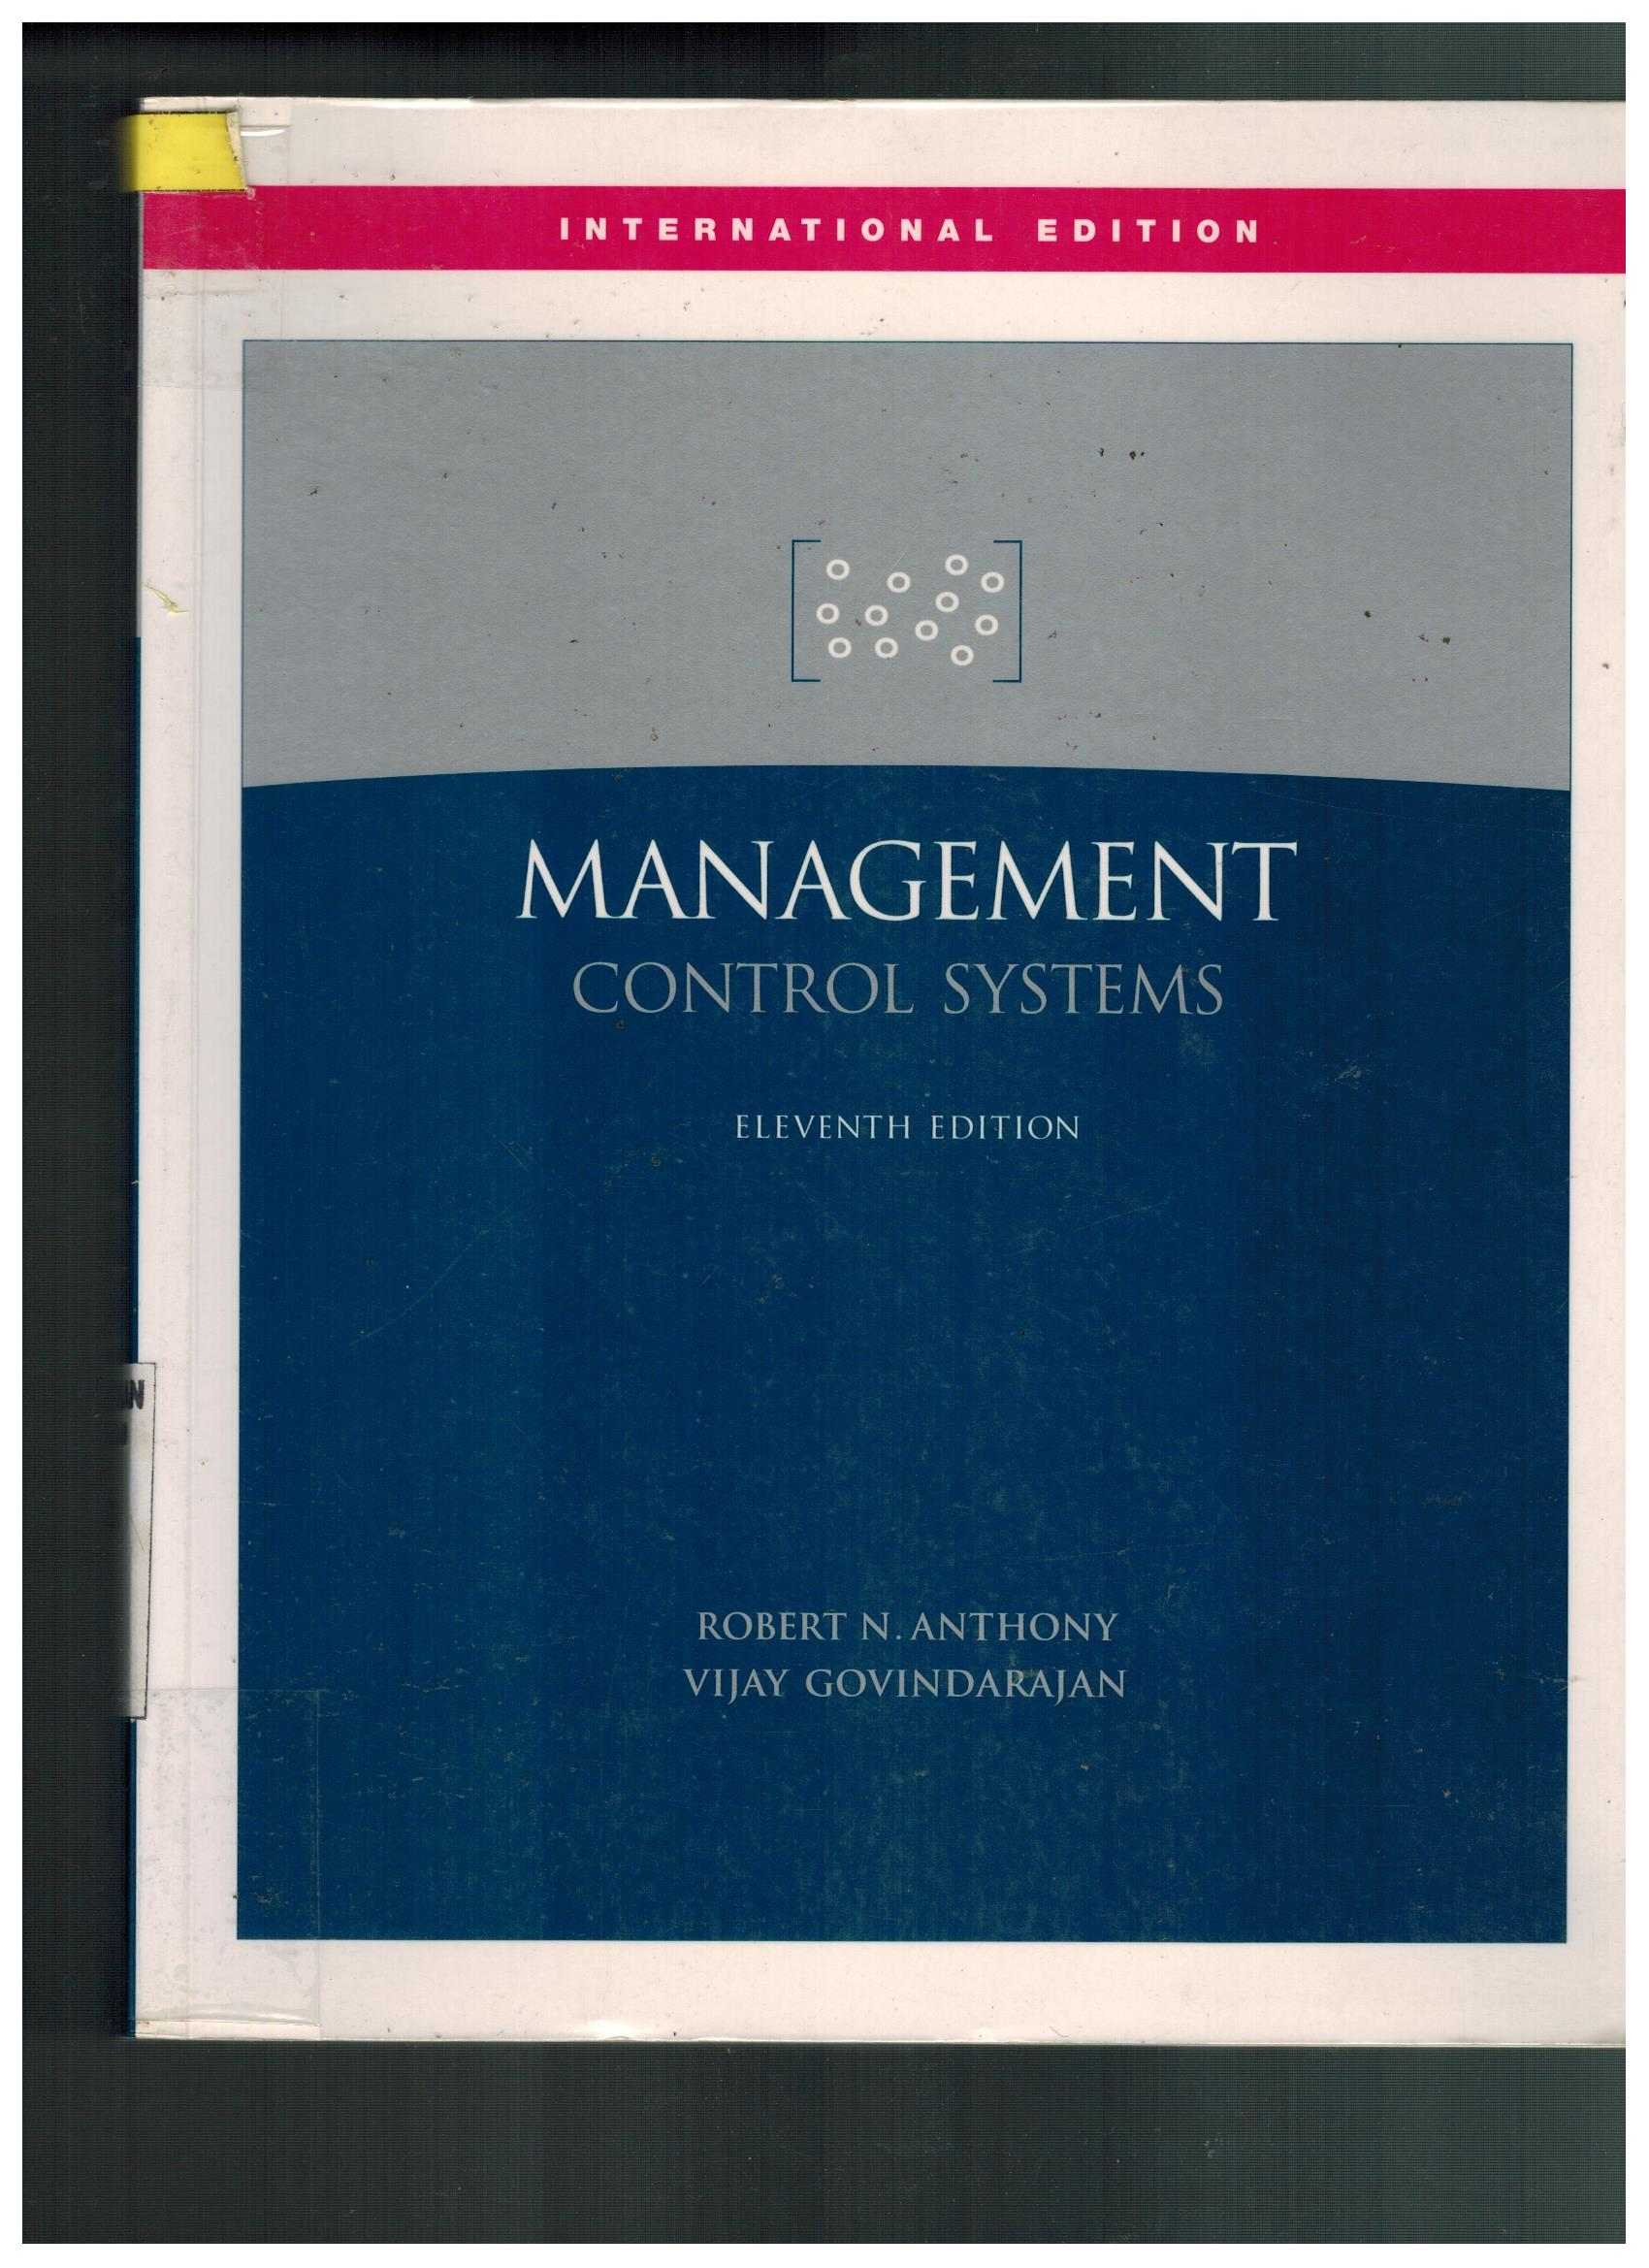 management control systems 4 6 Management control systems 4th edition (4th edition) [kenneth merchant, wim van der stede] on amazoncom free shipping on qualifying offers as the market-leading text for management control and performance measurement, this book will give you a thorough understanding of core concepts and key topics.